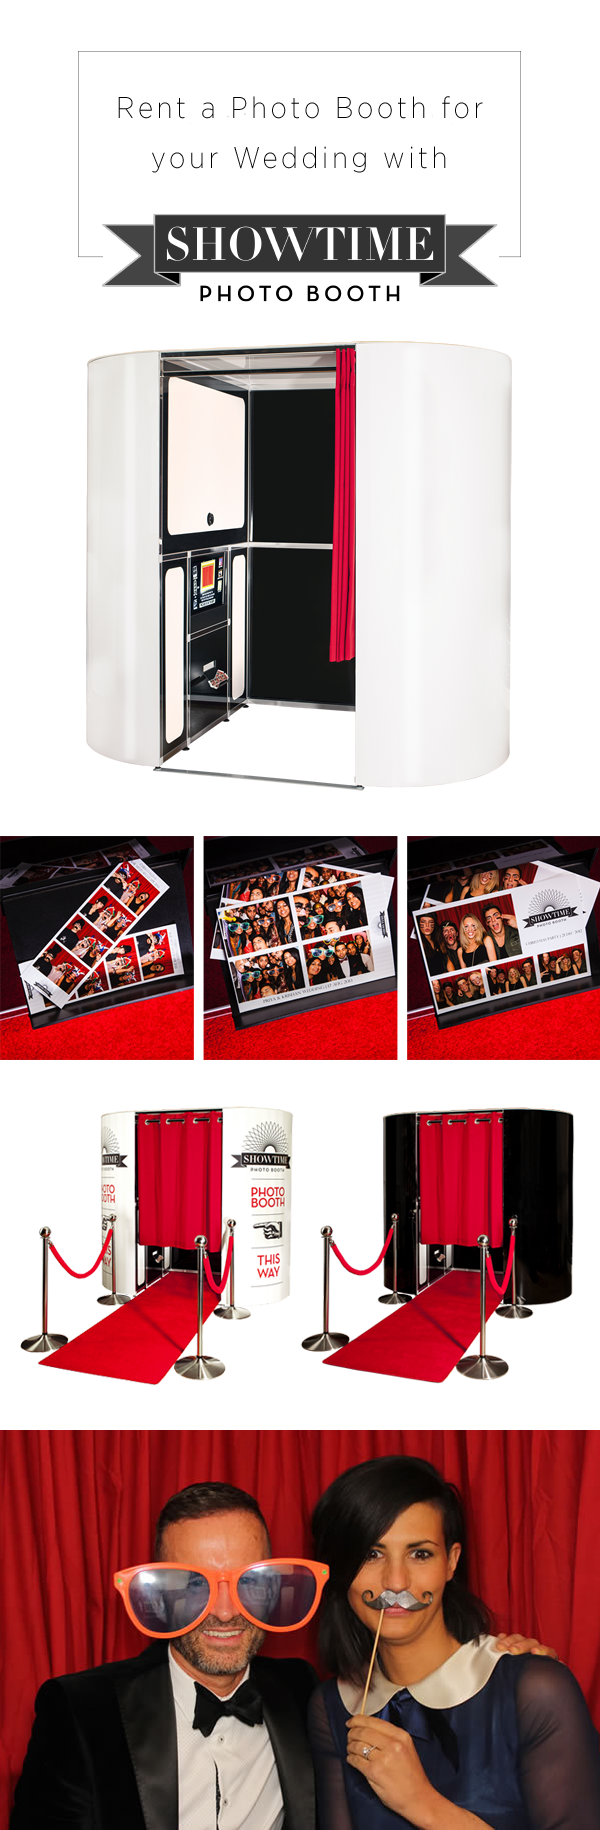 showtime-photo-booth-rental-london